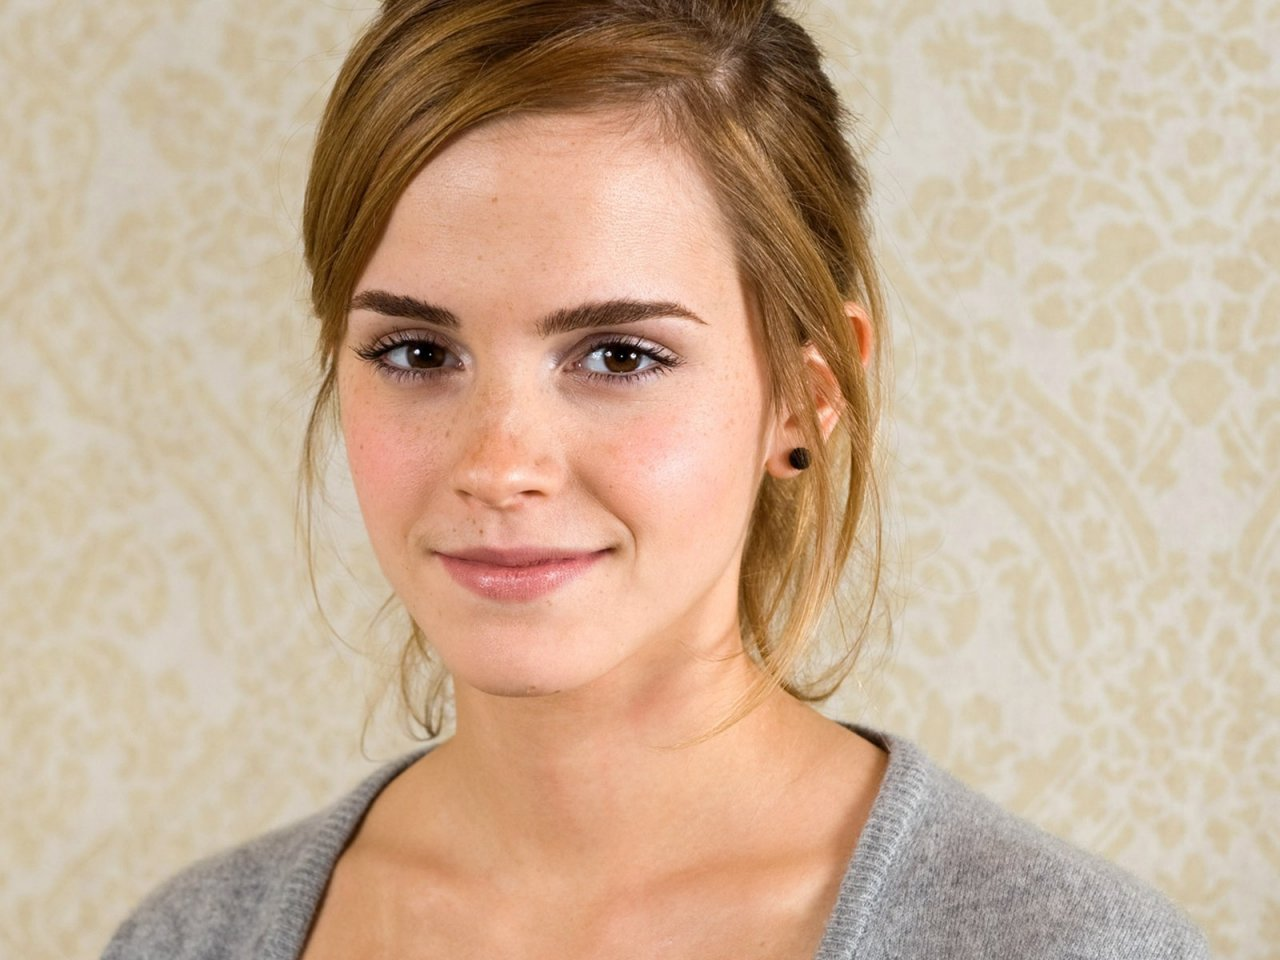 emma watson 3 women 3 journeys. Black Bedroom Furniture Sets. Home Design Ideas